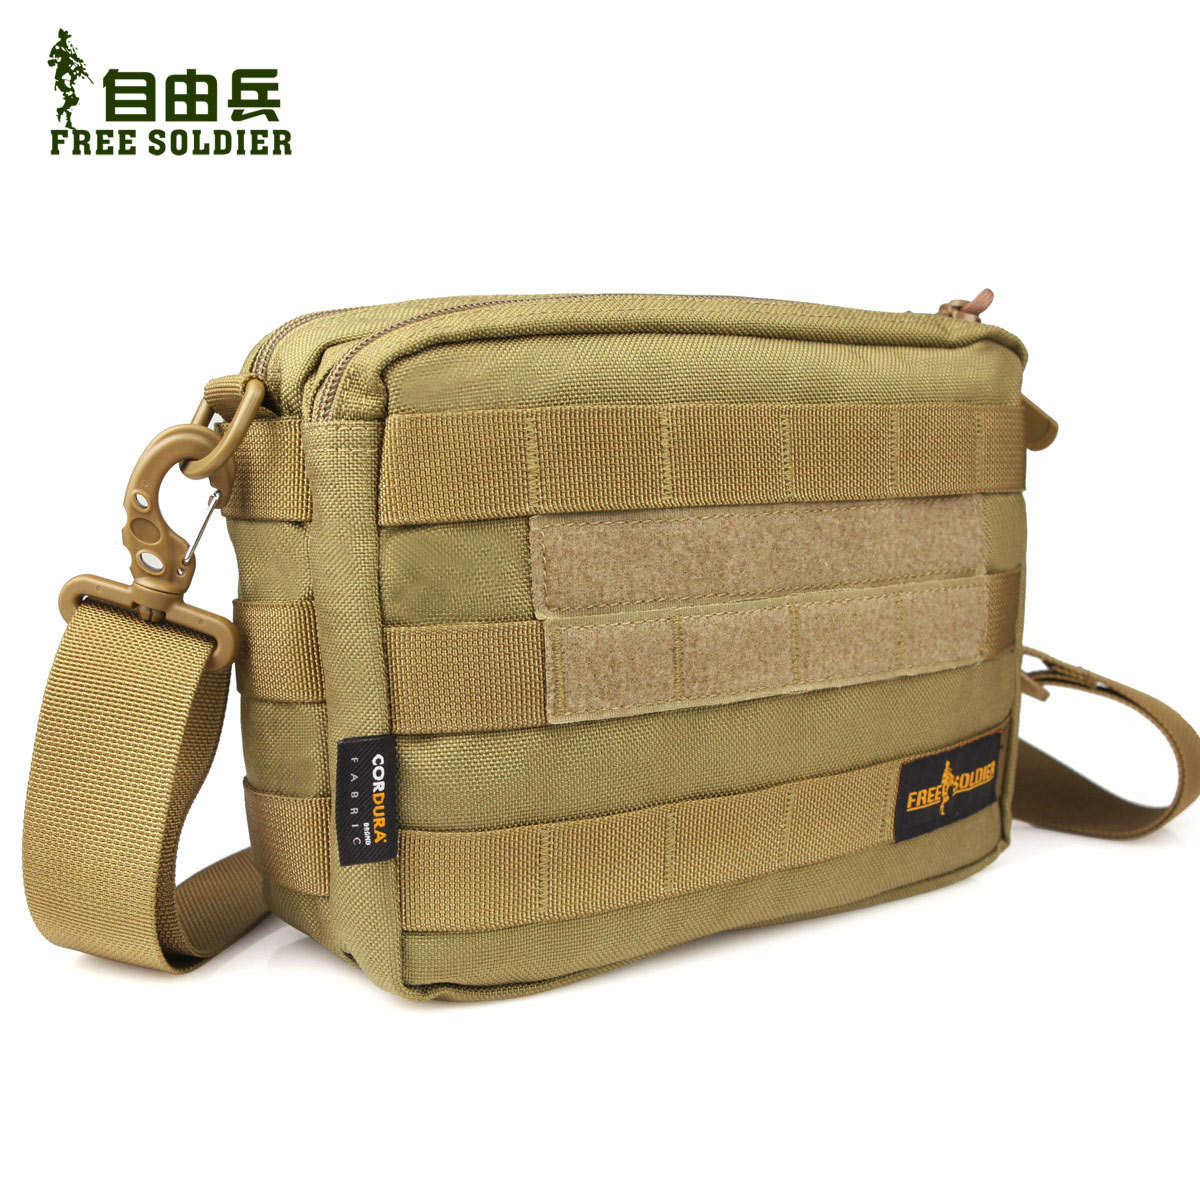 Tactical outdoor shoulder bag multifunctional service package e for portable dc messenger bag(China (Mainland))